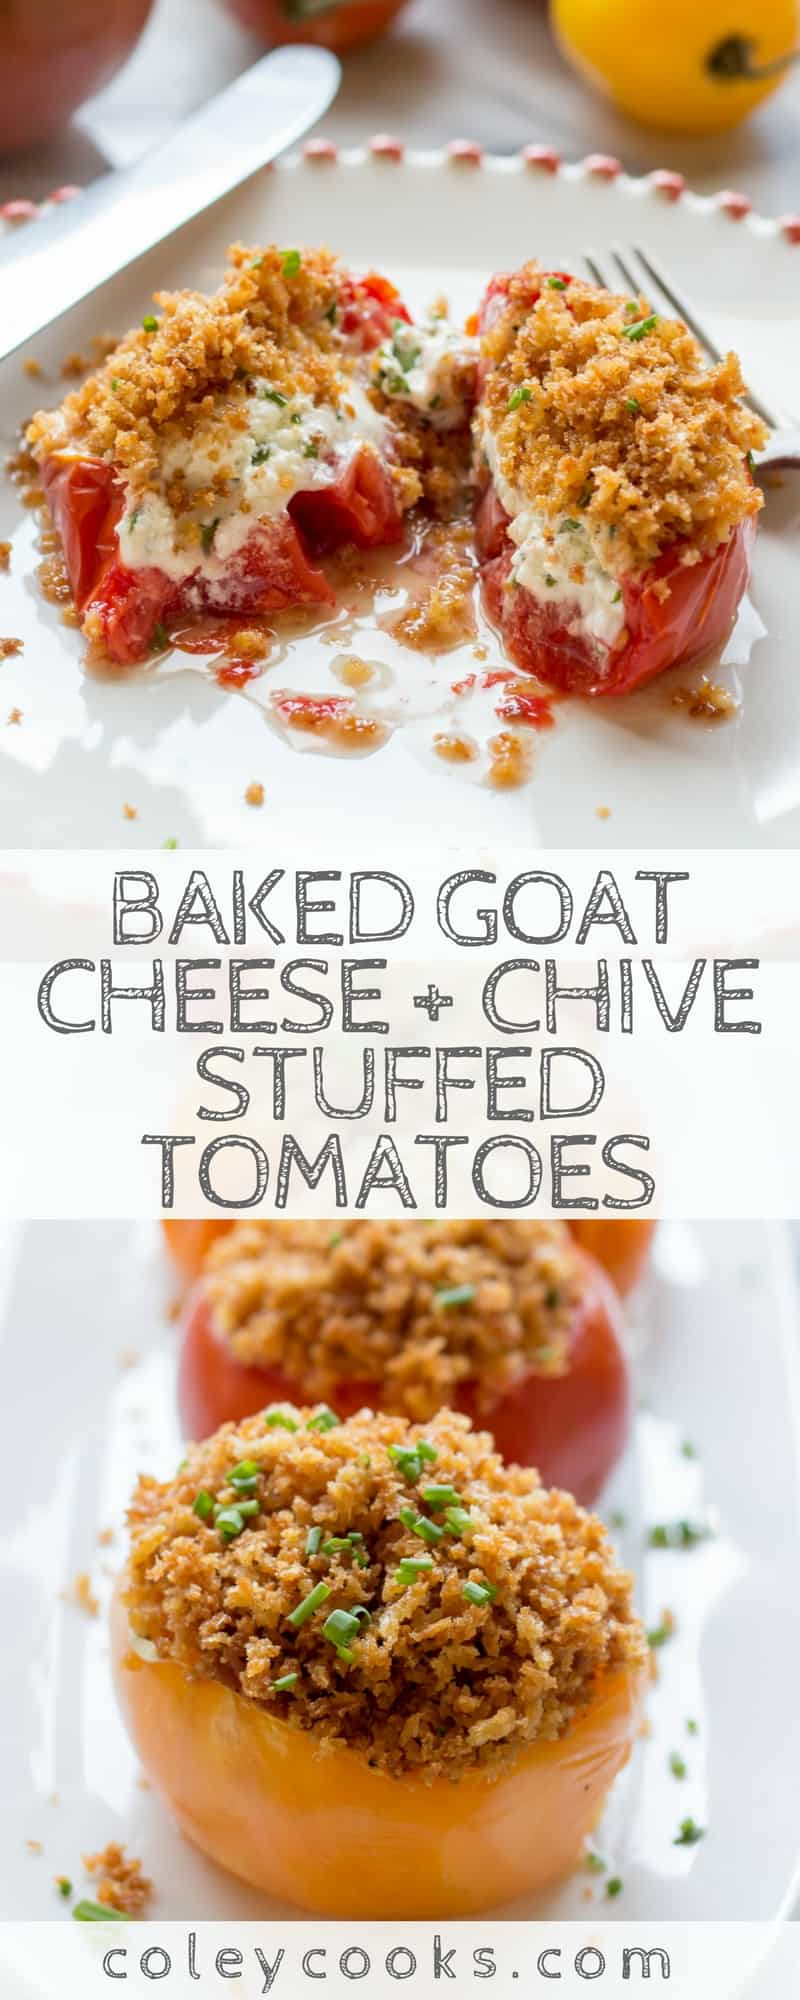 BAKED GOAT CHEESE + CHIVE STUFFED TOMATOES | Easy summer recipe. Makes a great light lunch or side dish to a light grilled dinner. The best way to enjoy heirloom tomatoes! #vegetarian #side #tomatoes | ColeyCooks.com